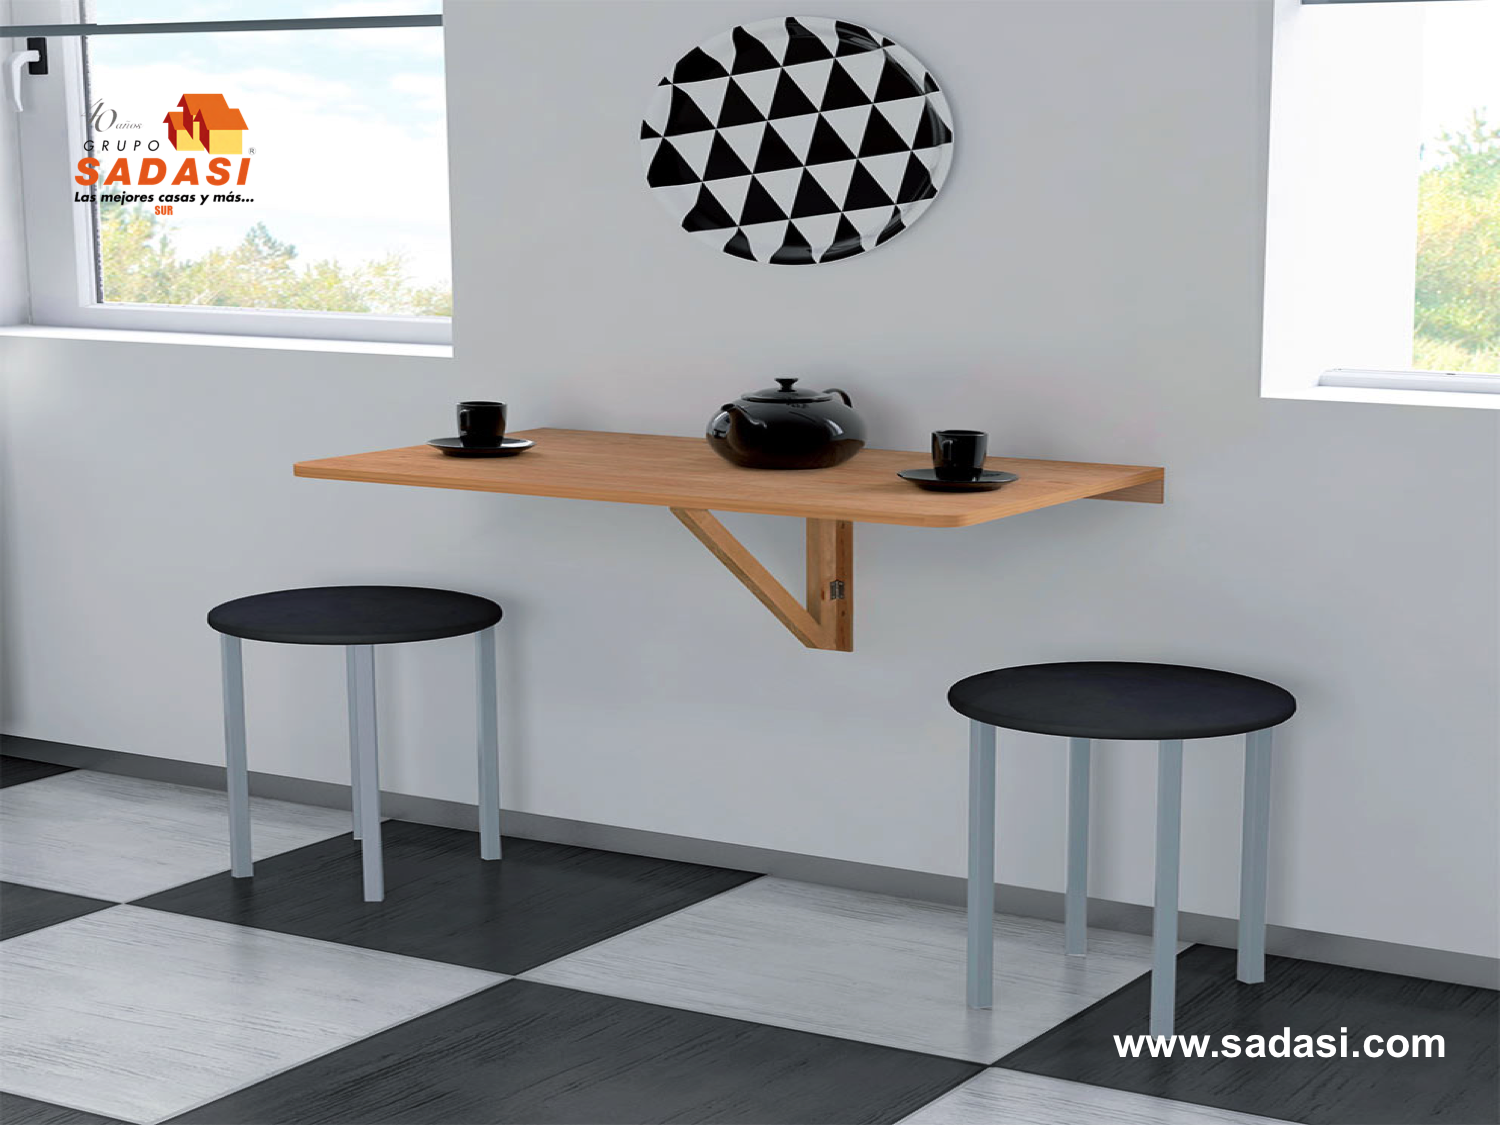 M s de 25 ideas incre bles sobre mesa abatible pared en - Mesa de comedor plegable a la pared ...